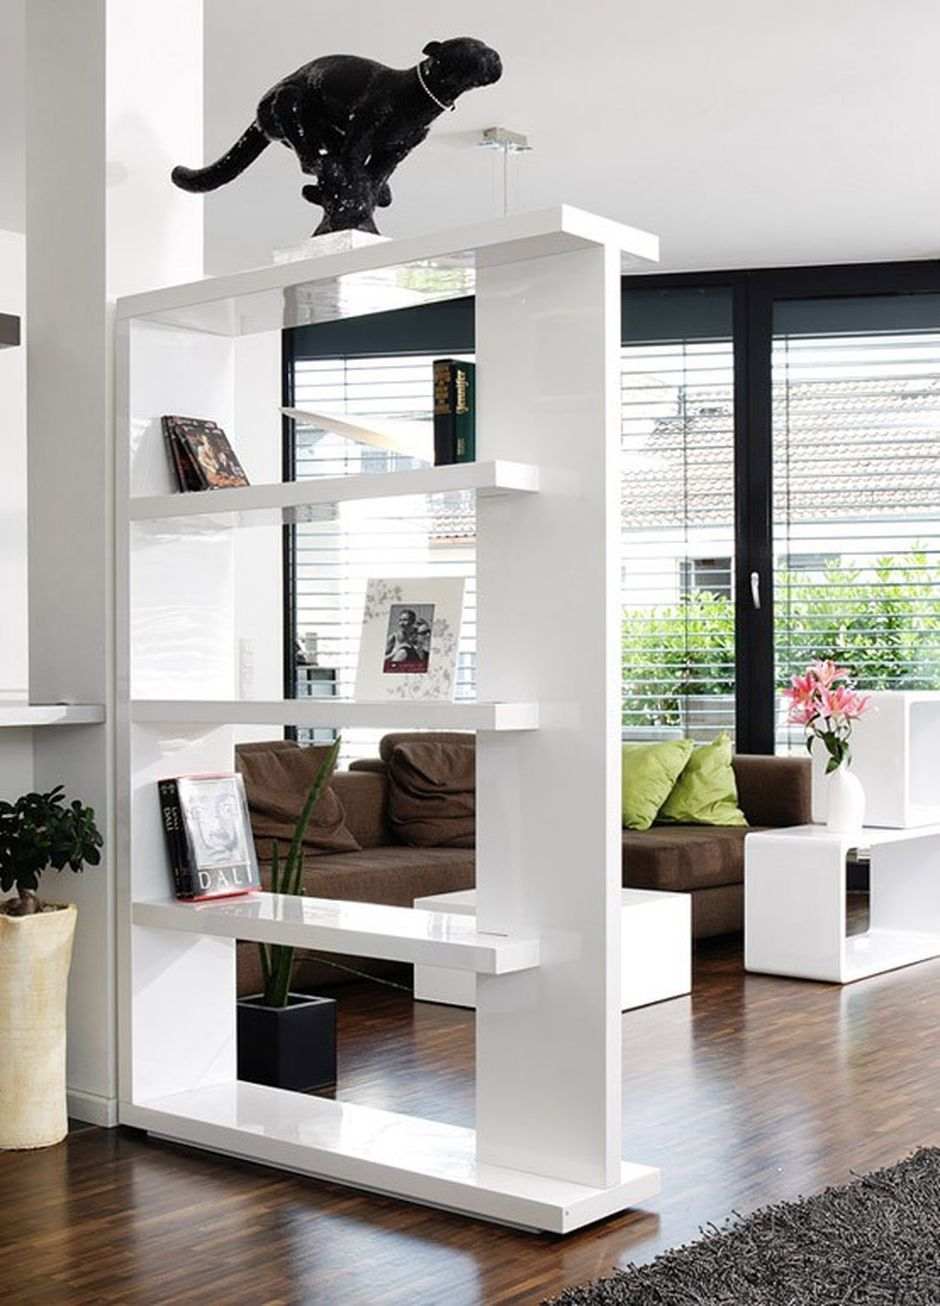 80 Incredible Room Dividers And Separators With Selves Design Hoommy Com Living Room Kitchen Divider Living Room Divider Living Room Partition Design #separators #for #living #room